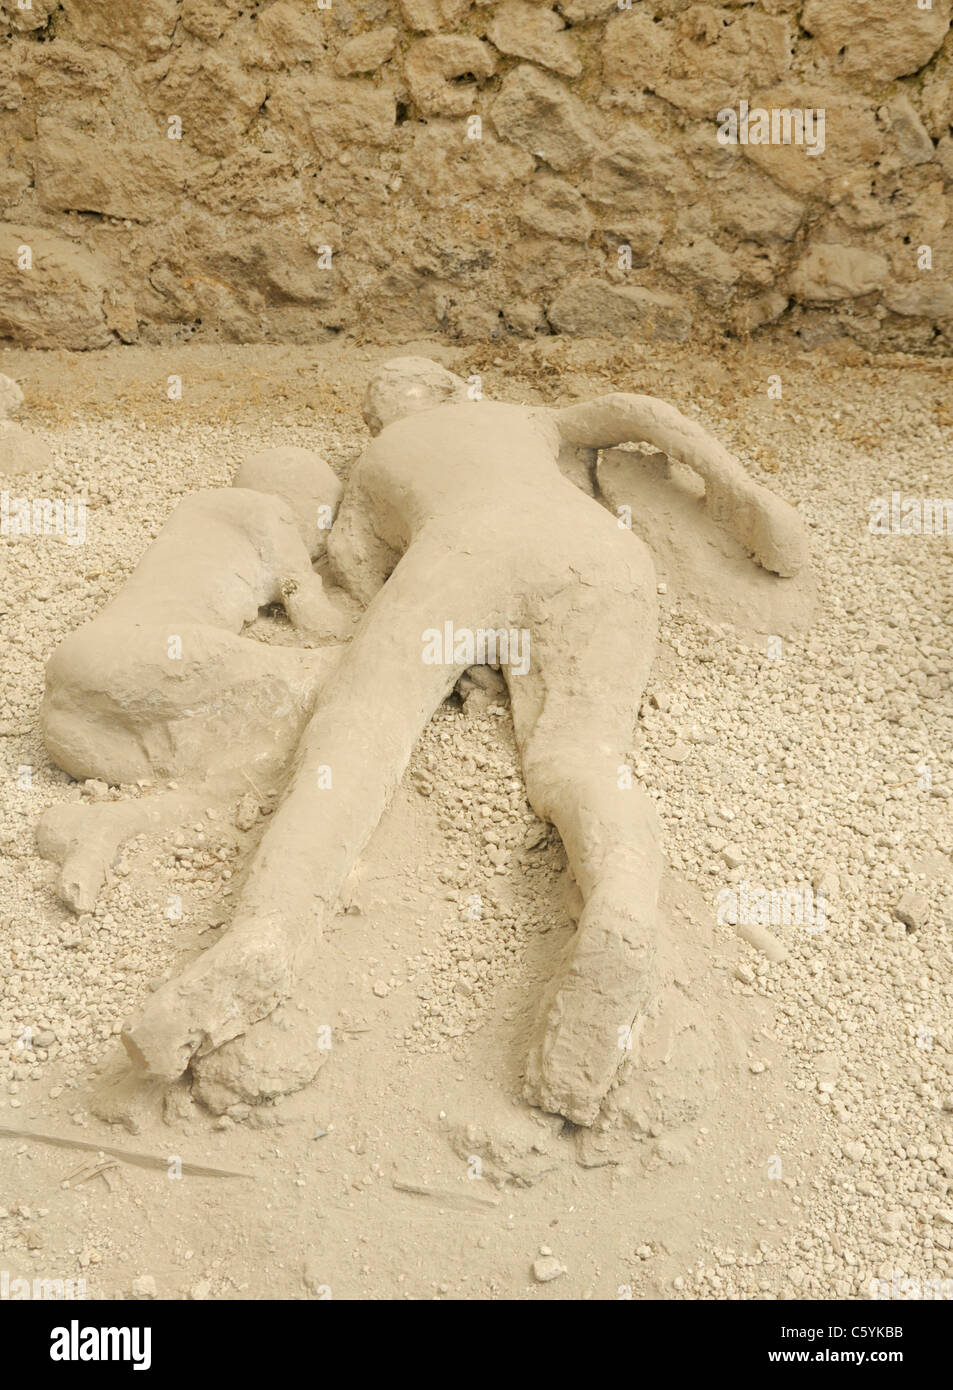 Pompeii victims, plaster casts, Garden of the Fugitives - Stock Image